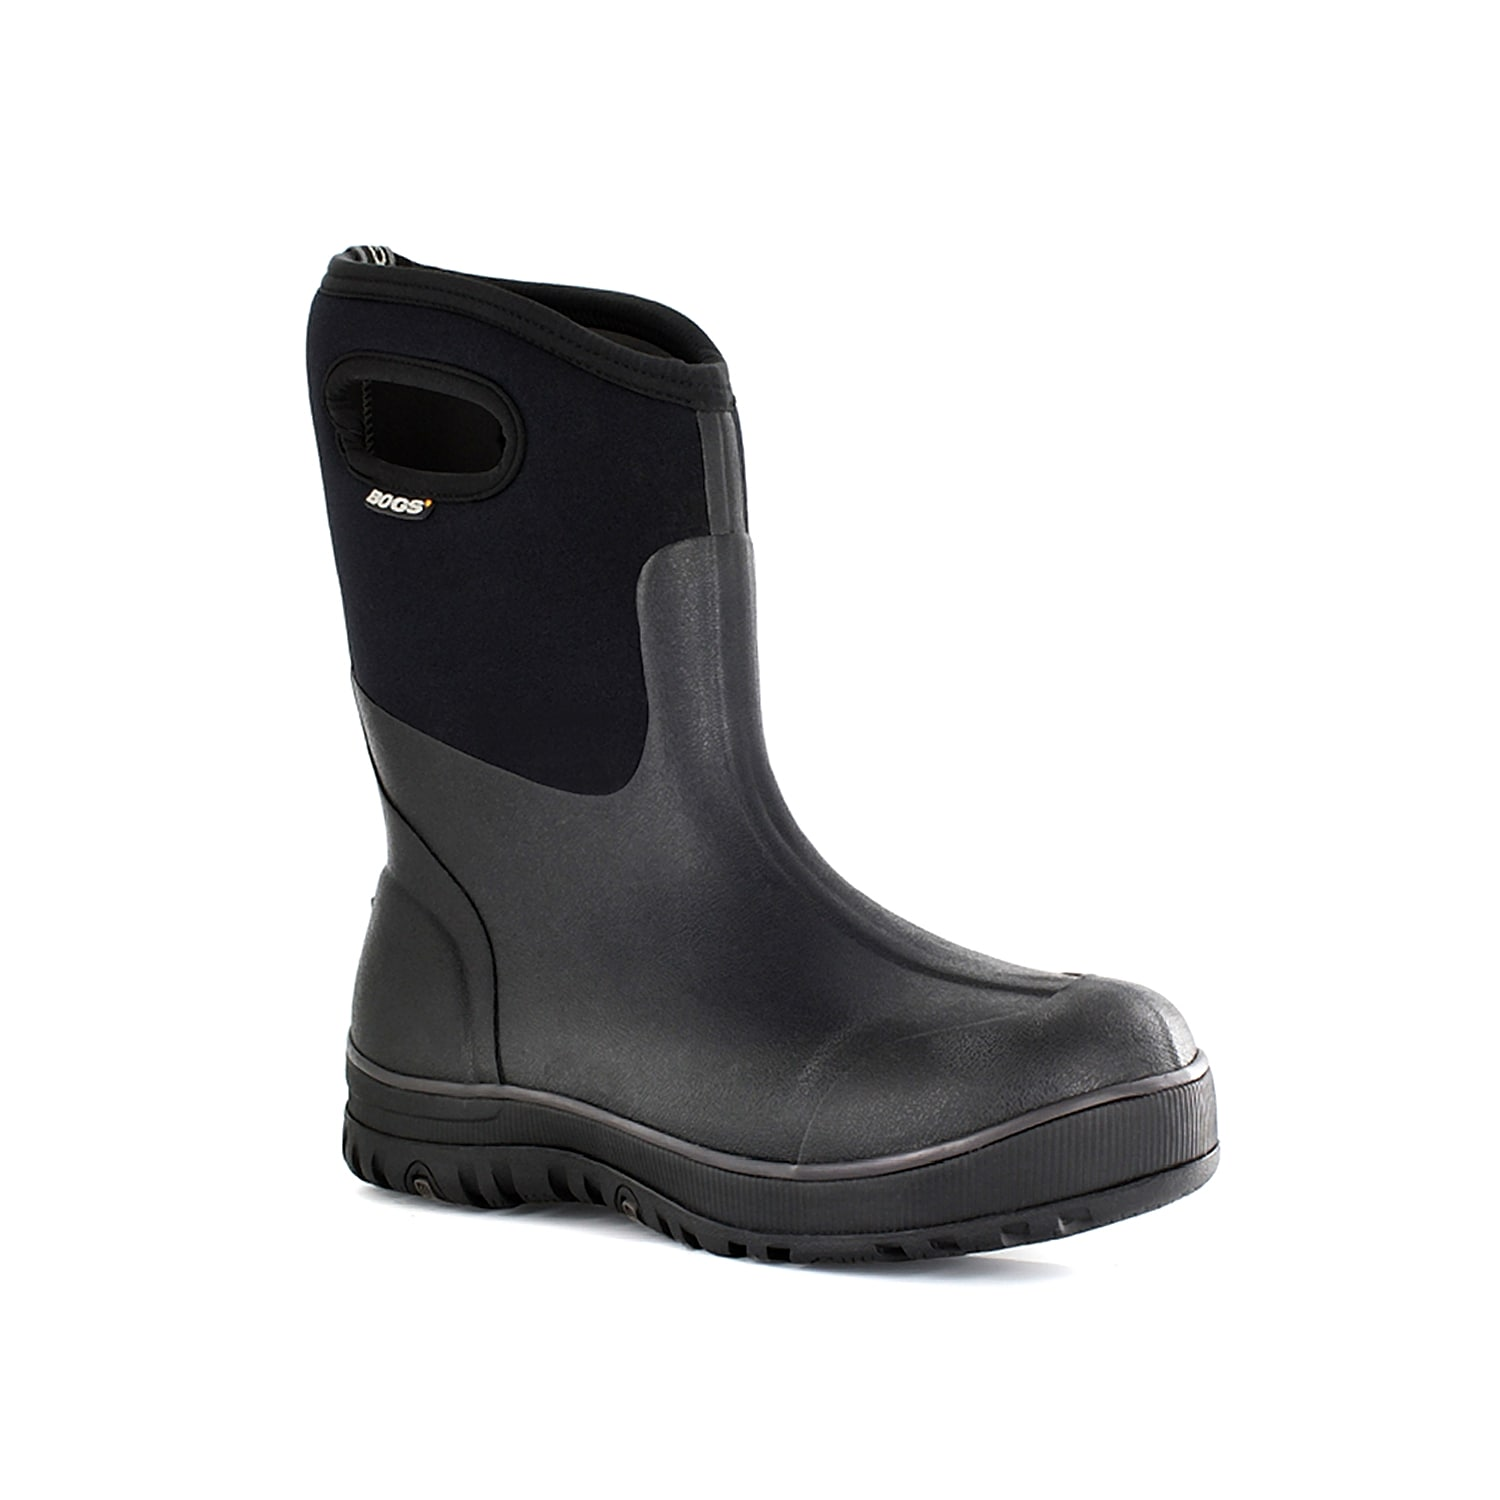 For a versatile boot that withstands shoveling snow, wading in water, or gardening, add the Mid Rubber boot from Bogs to your outdoor shoe collection.